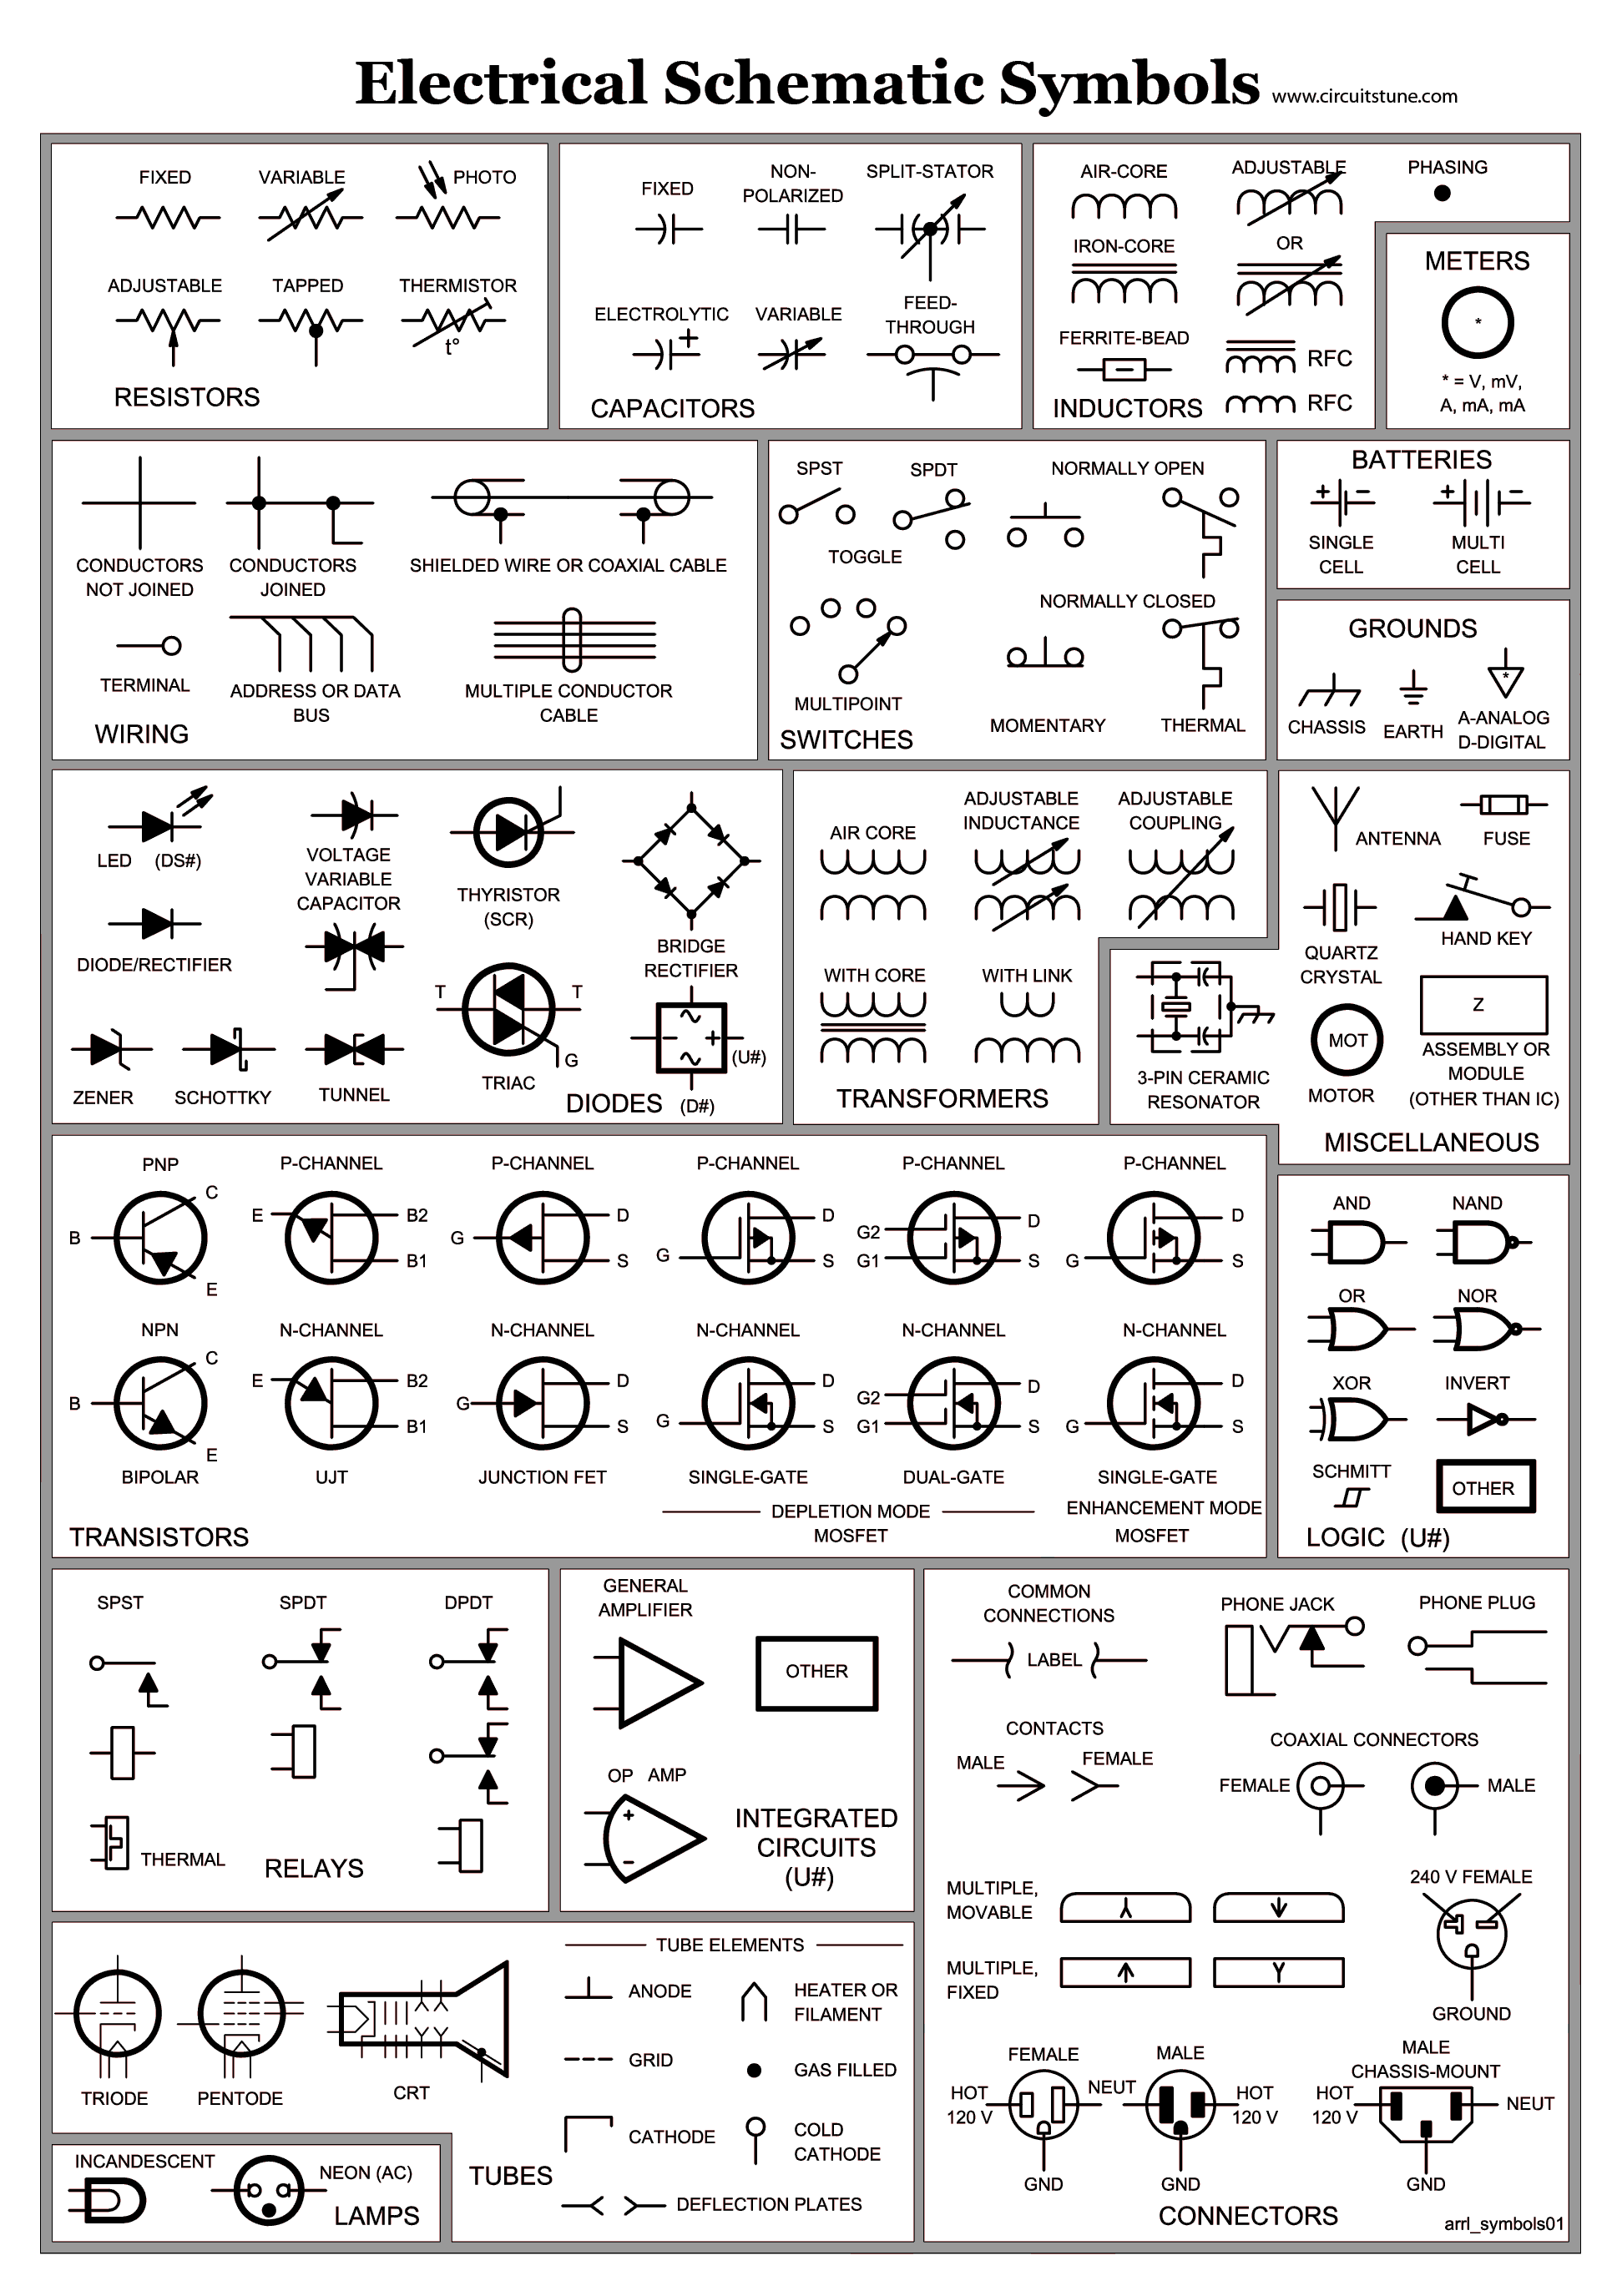 Electrical schematic symbols wire diagram symbols automotive electrical schematic symbols wire diagram symbols automotive wiring schematic asfbconference2016 Images